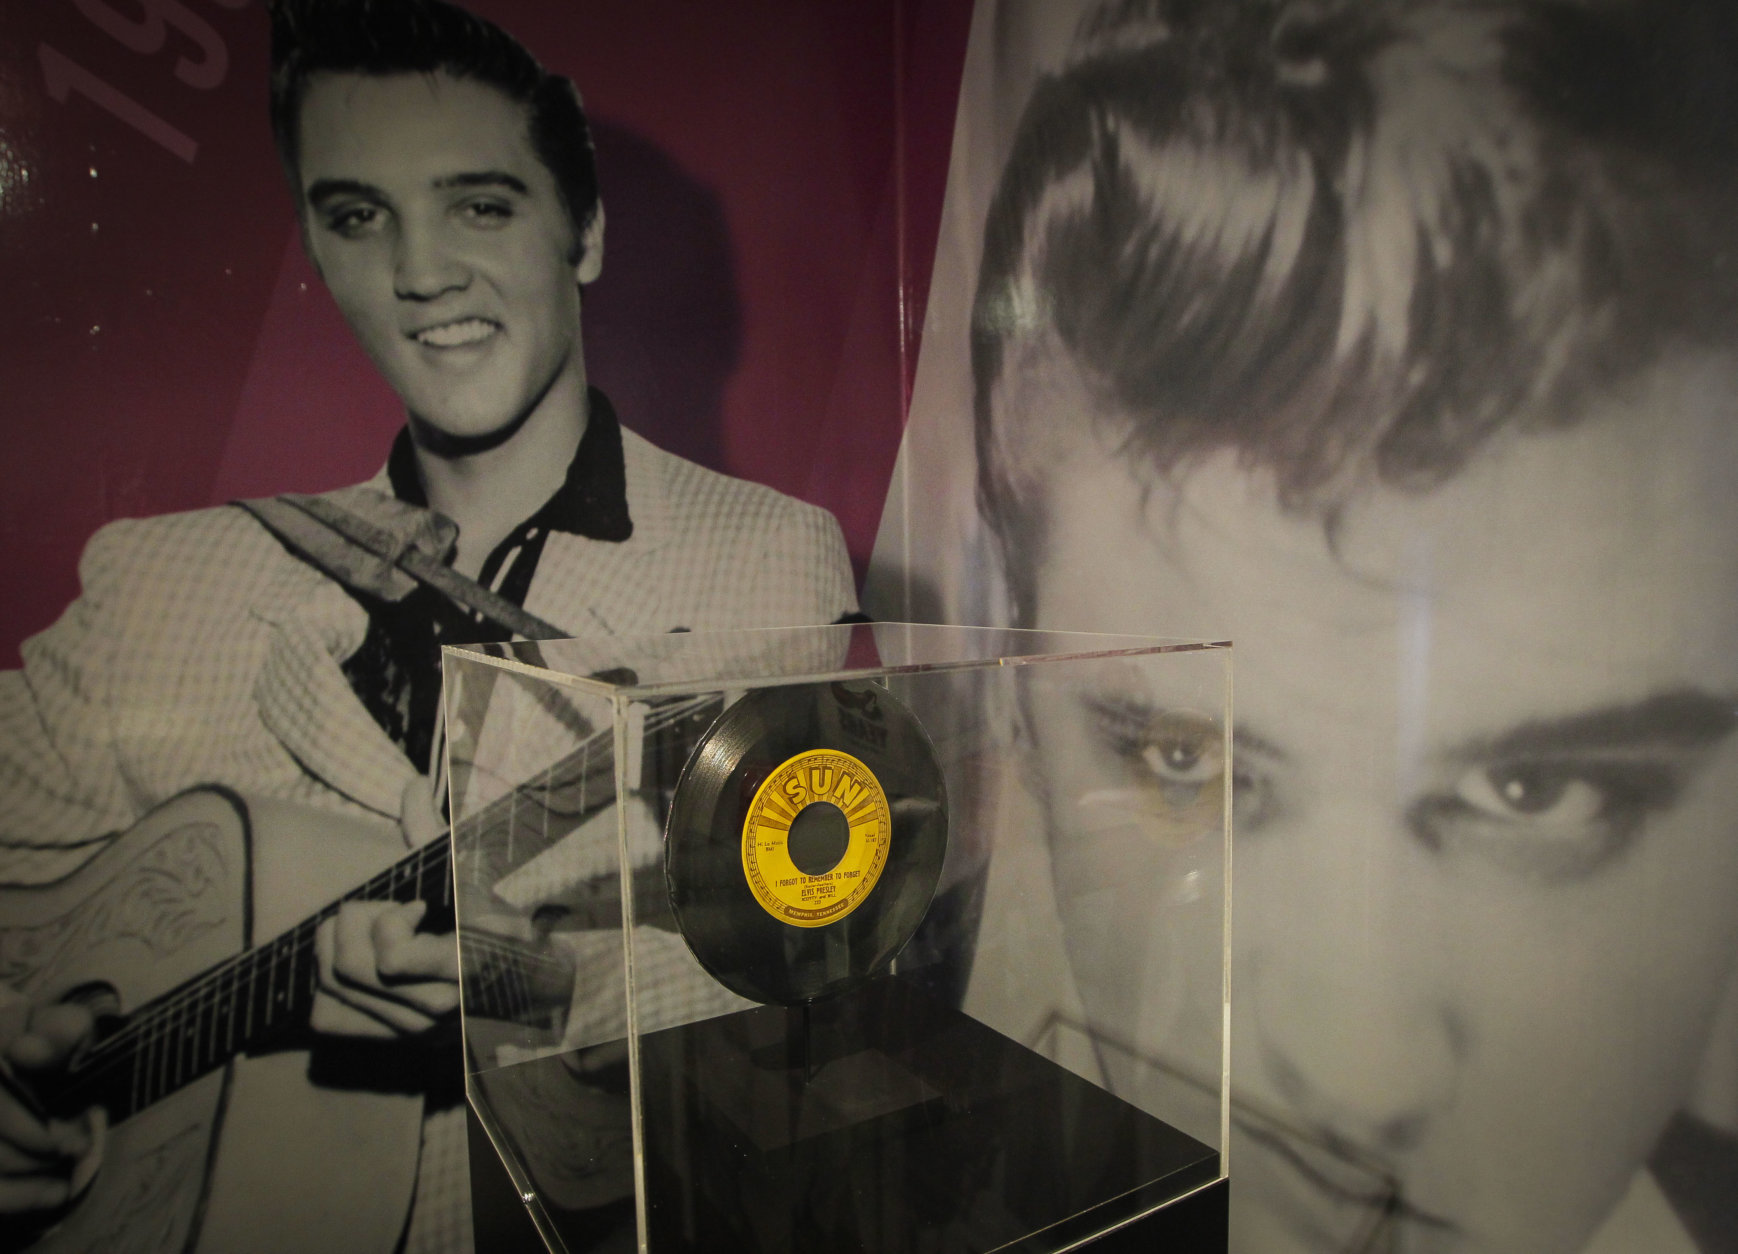 """A 45 rpm record of, """"I forgot to remember to forget,"""" is one of the items in a new """"60 years of Elvis"""" exhibit sits inside an annex at Graceland on Friday, Feb. 21, 2014, in Memphis, Tenn. The exhibit features jump suits worn by Presley, an organ played in his California home, a copy of the original """"That's All Right"""" record and other miscellaneous Elvis items. (AP Photo/Lance Murphey)"""